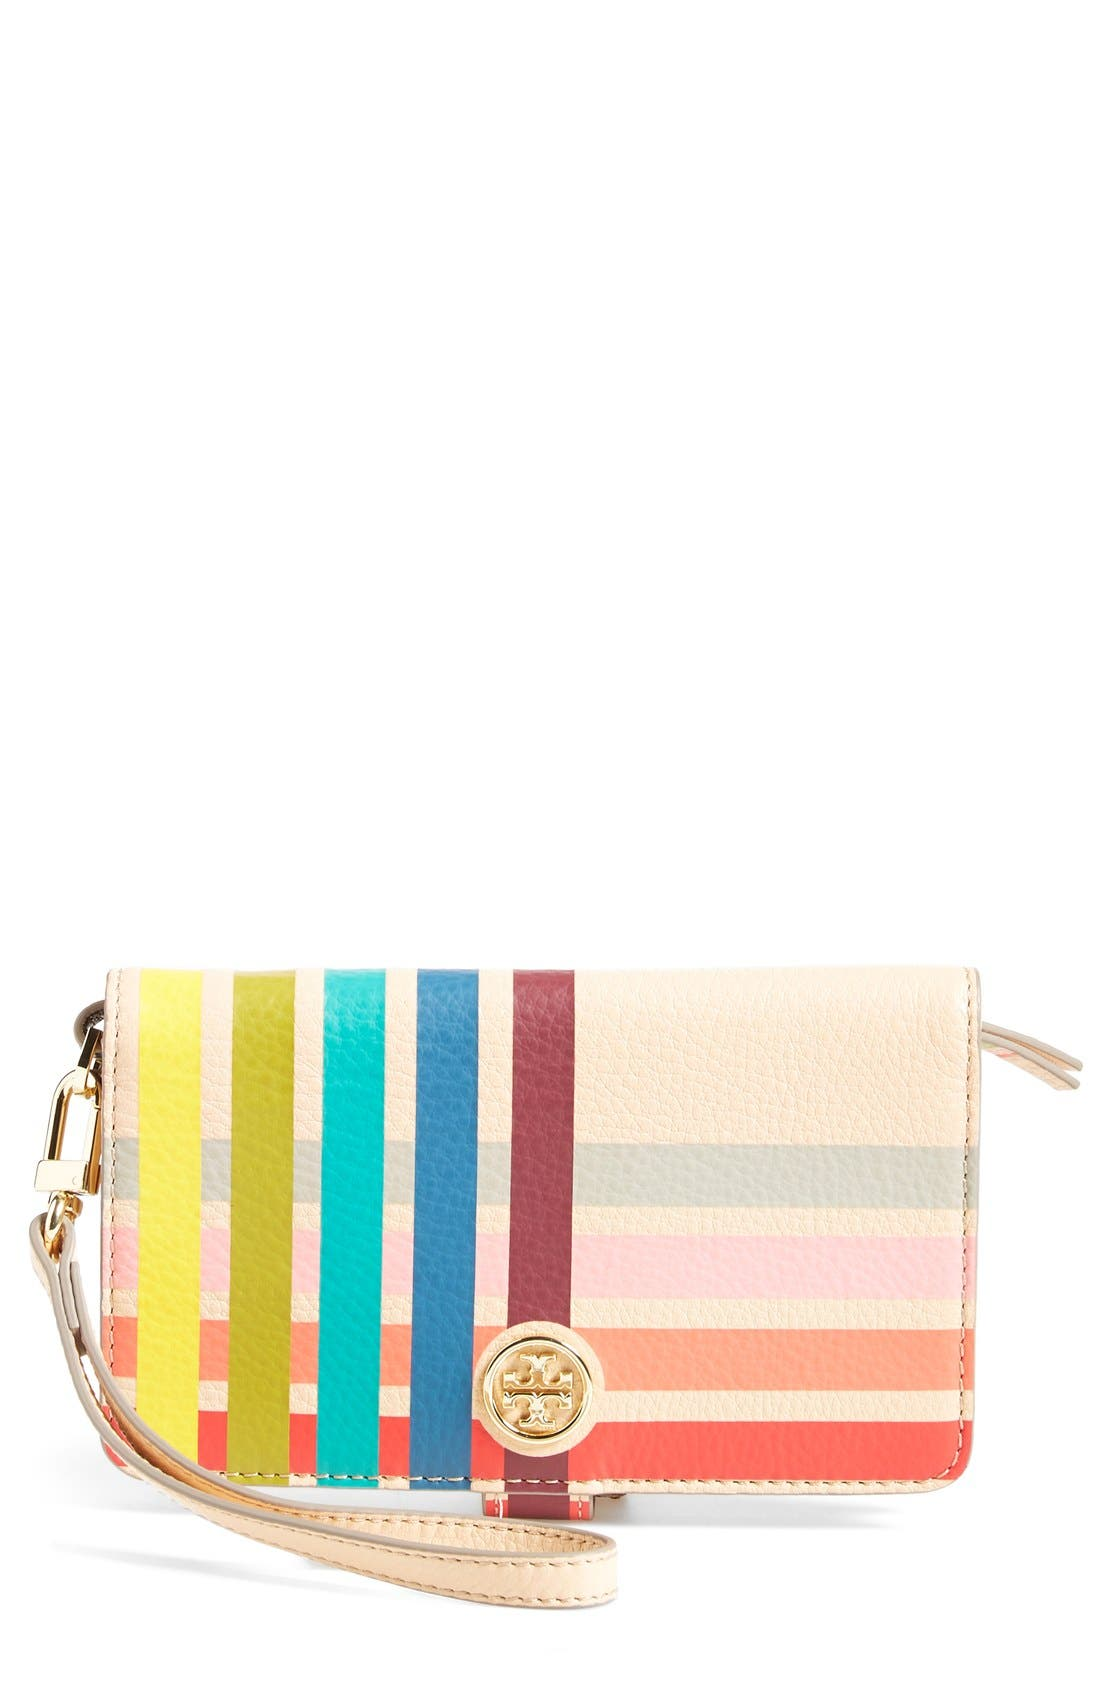 Alternate Image 1 Selected - Tory Burch Striped Phone Wristlet